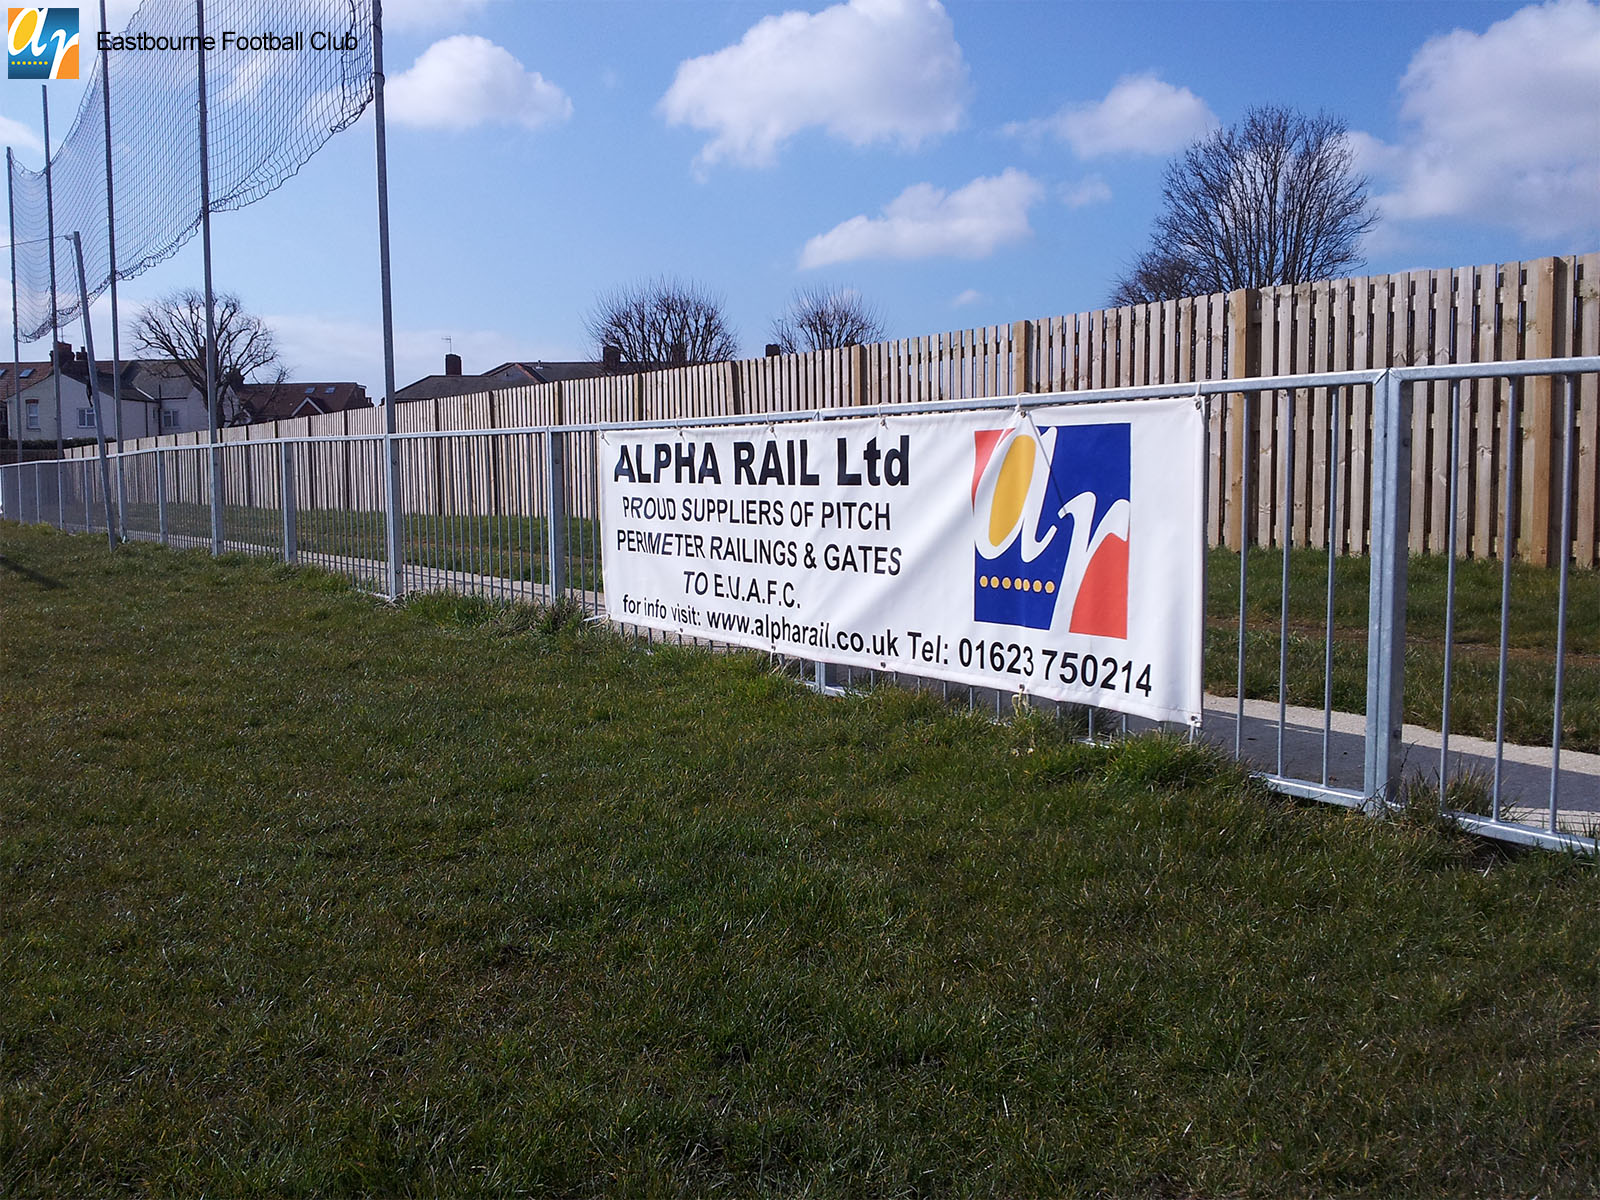 Metal sports pitch barrier